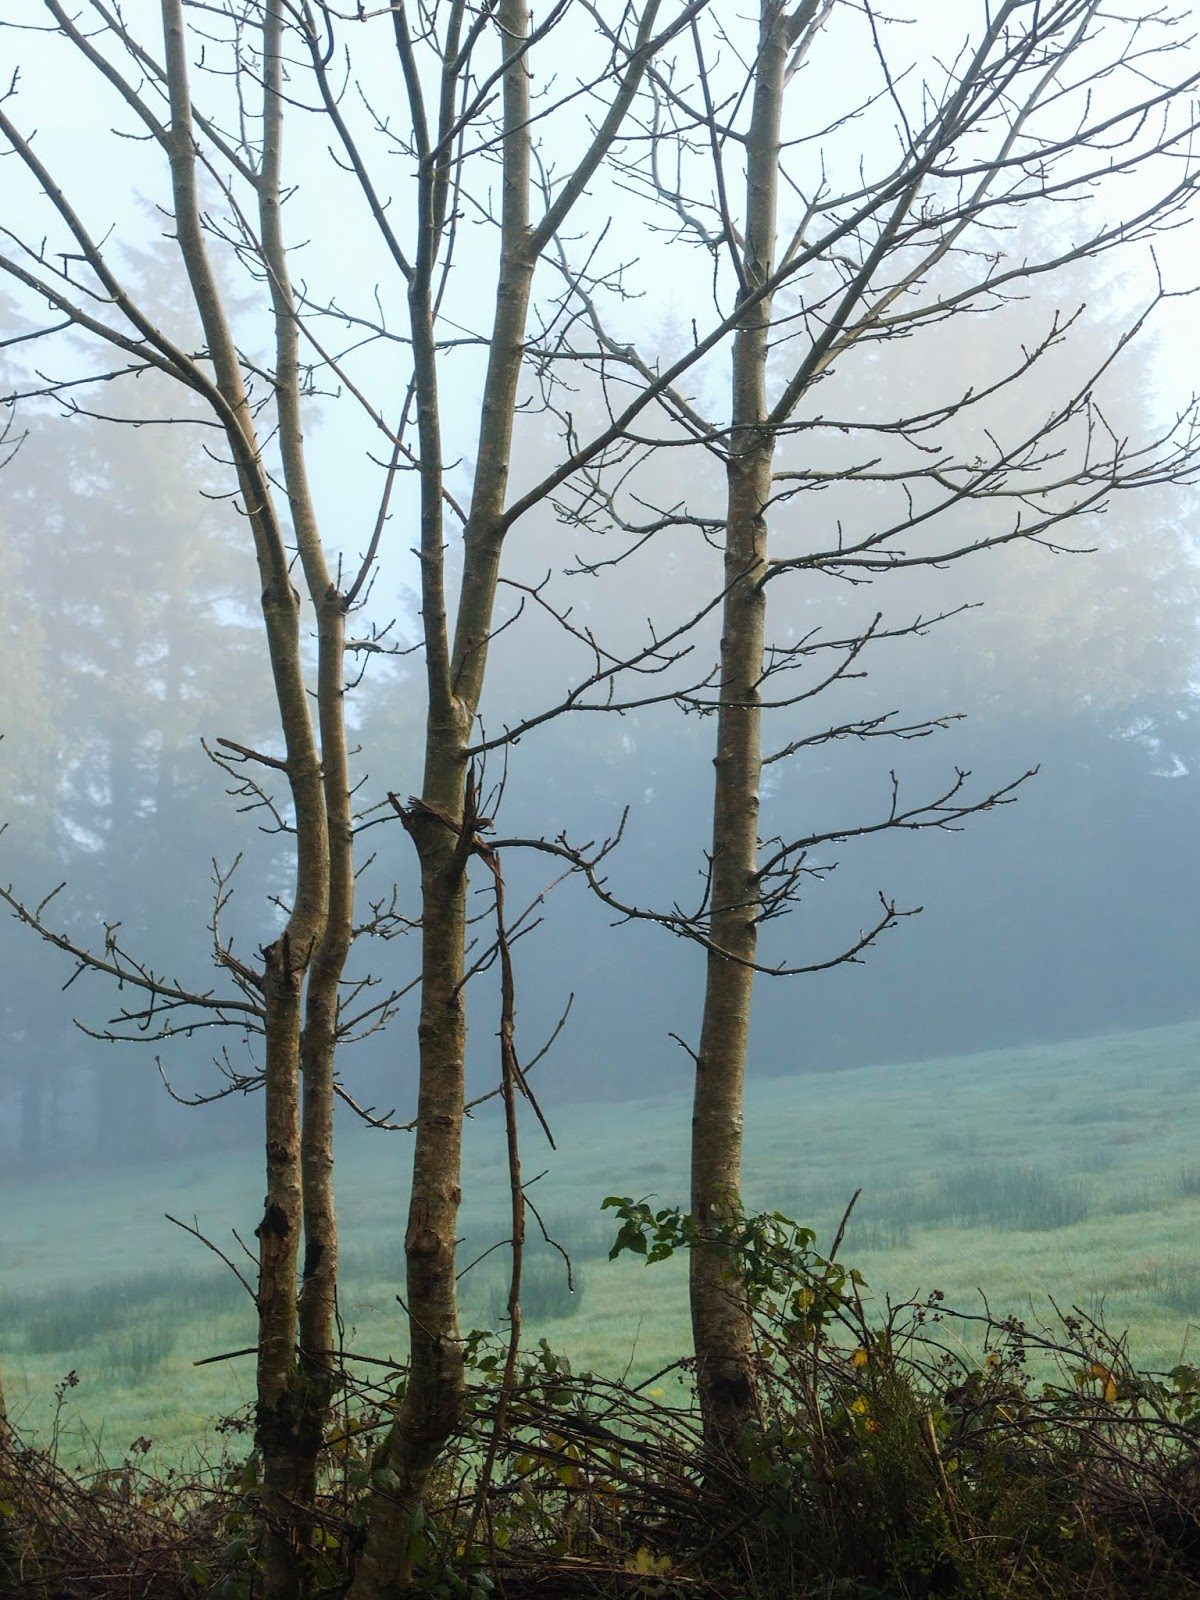 Bare trees on a hill side covered in a thick morning fog.